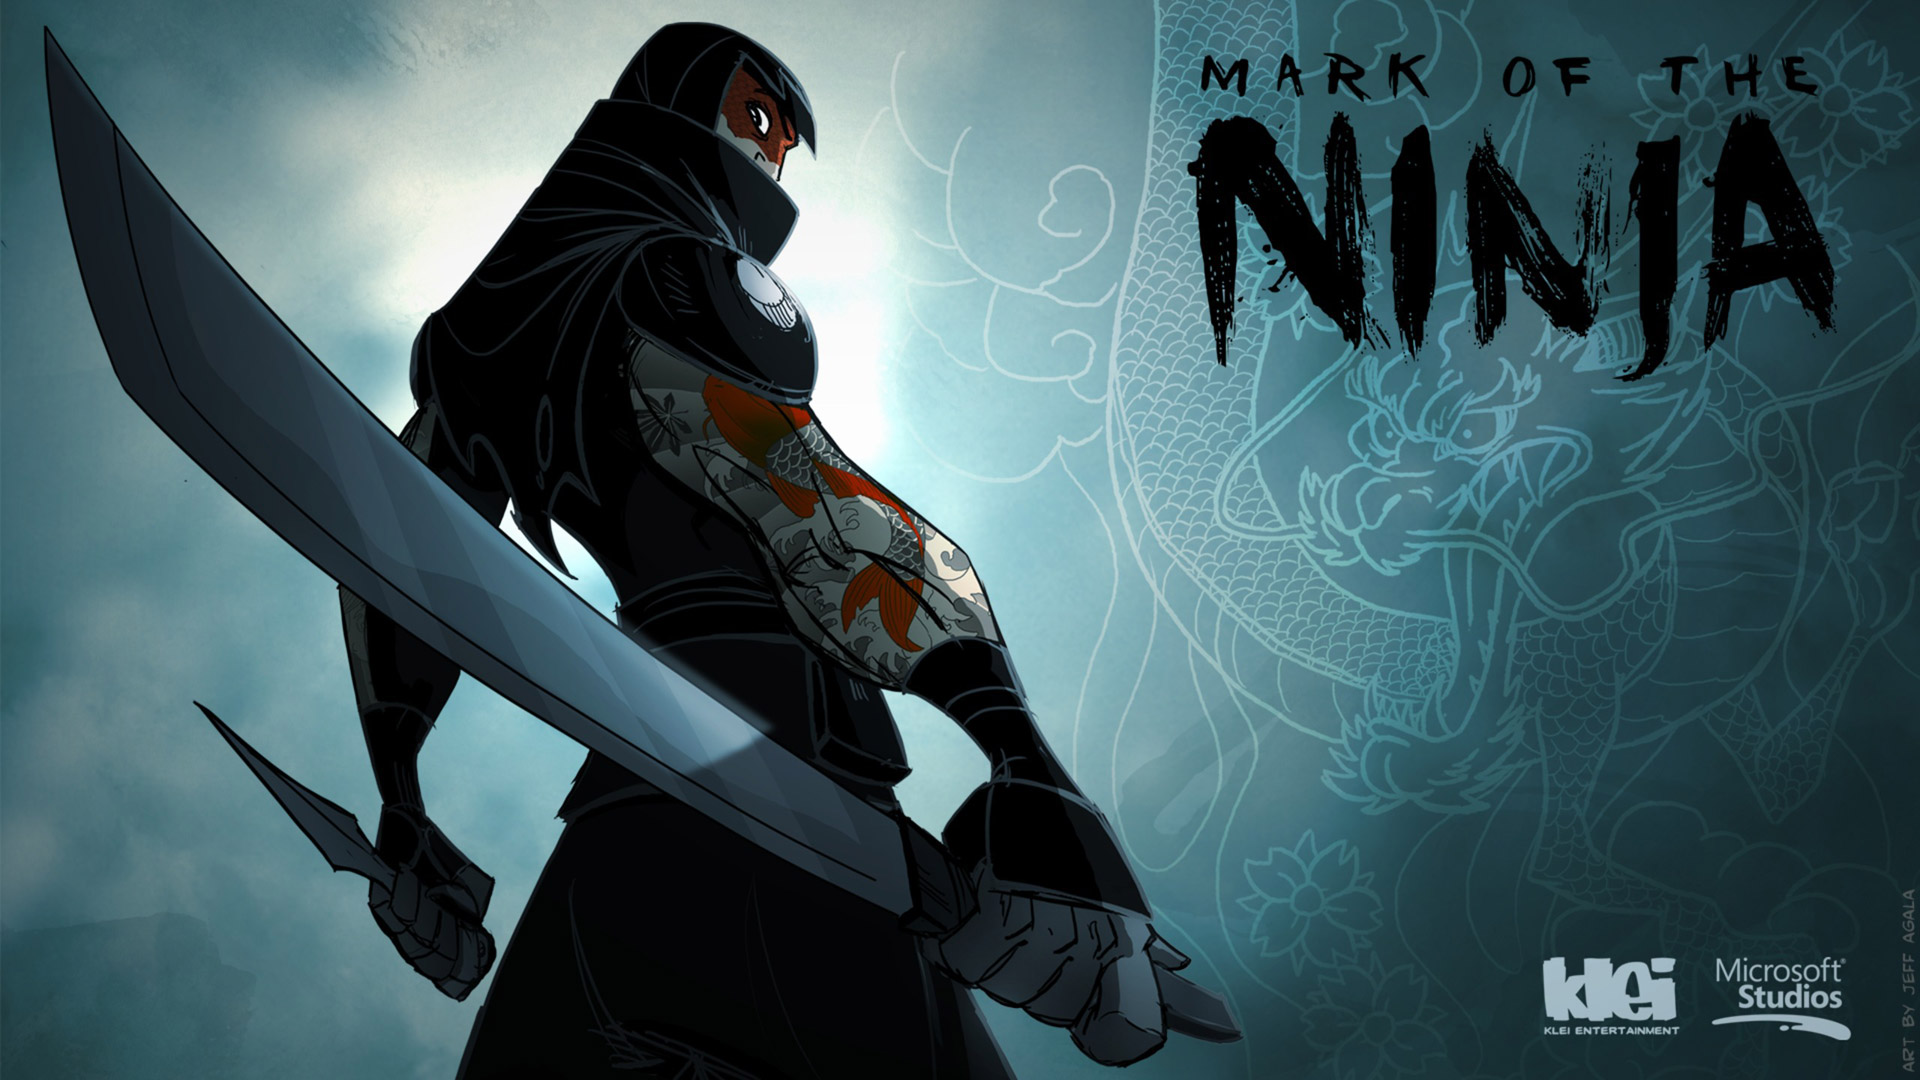 Mark of the Ninja Wallpaper in 1920x1080